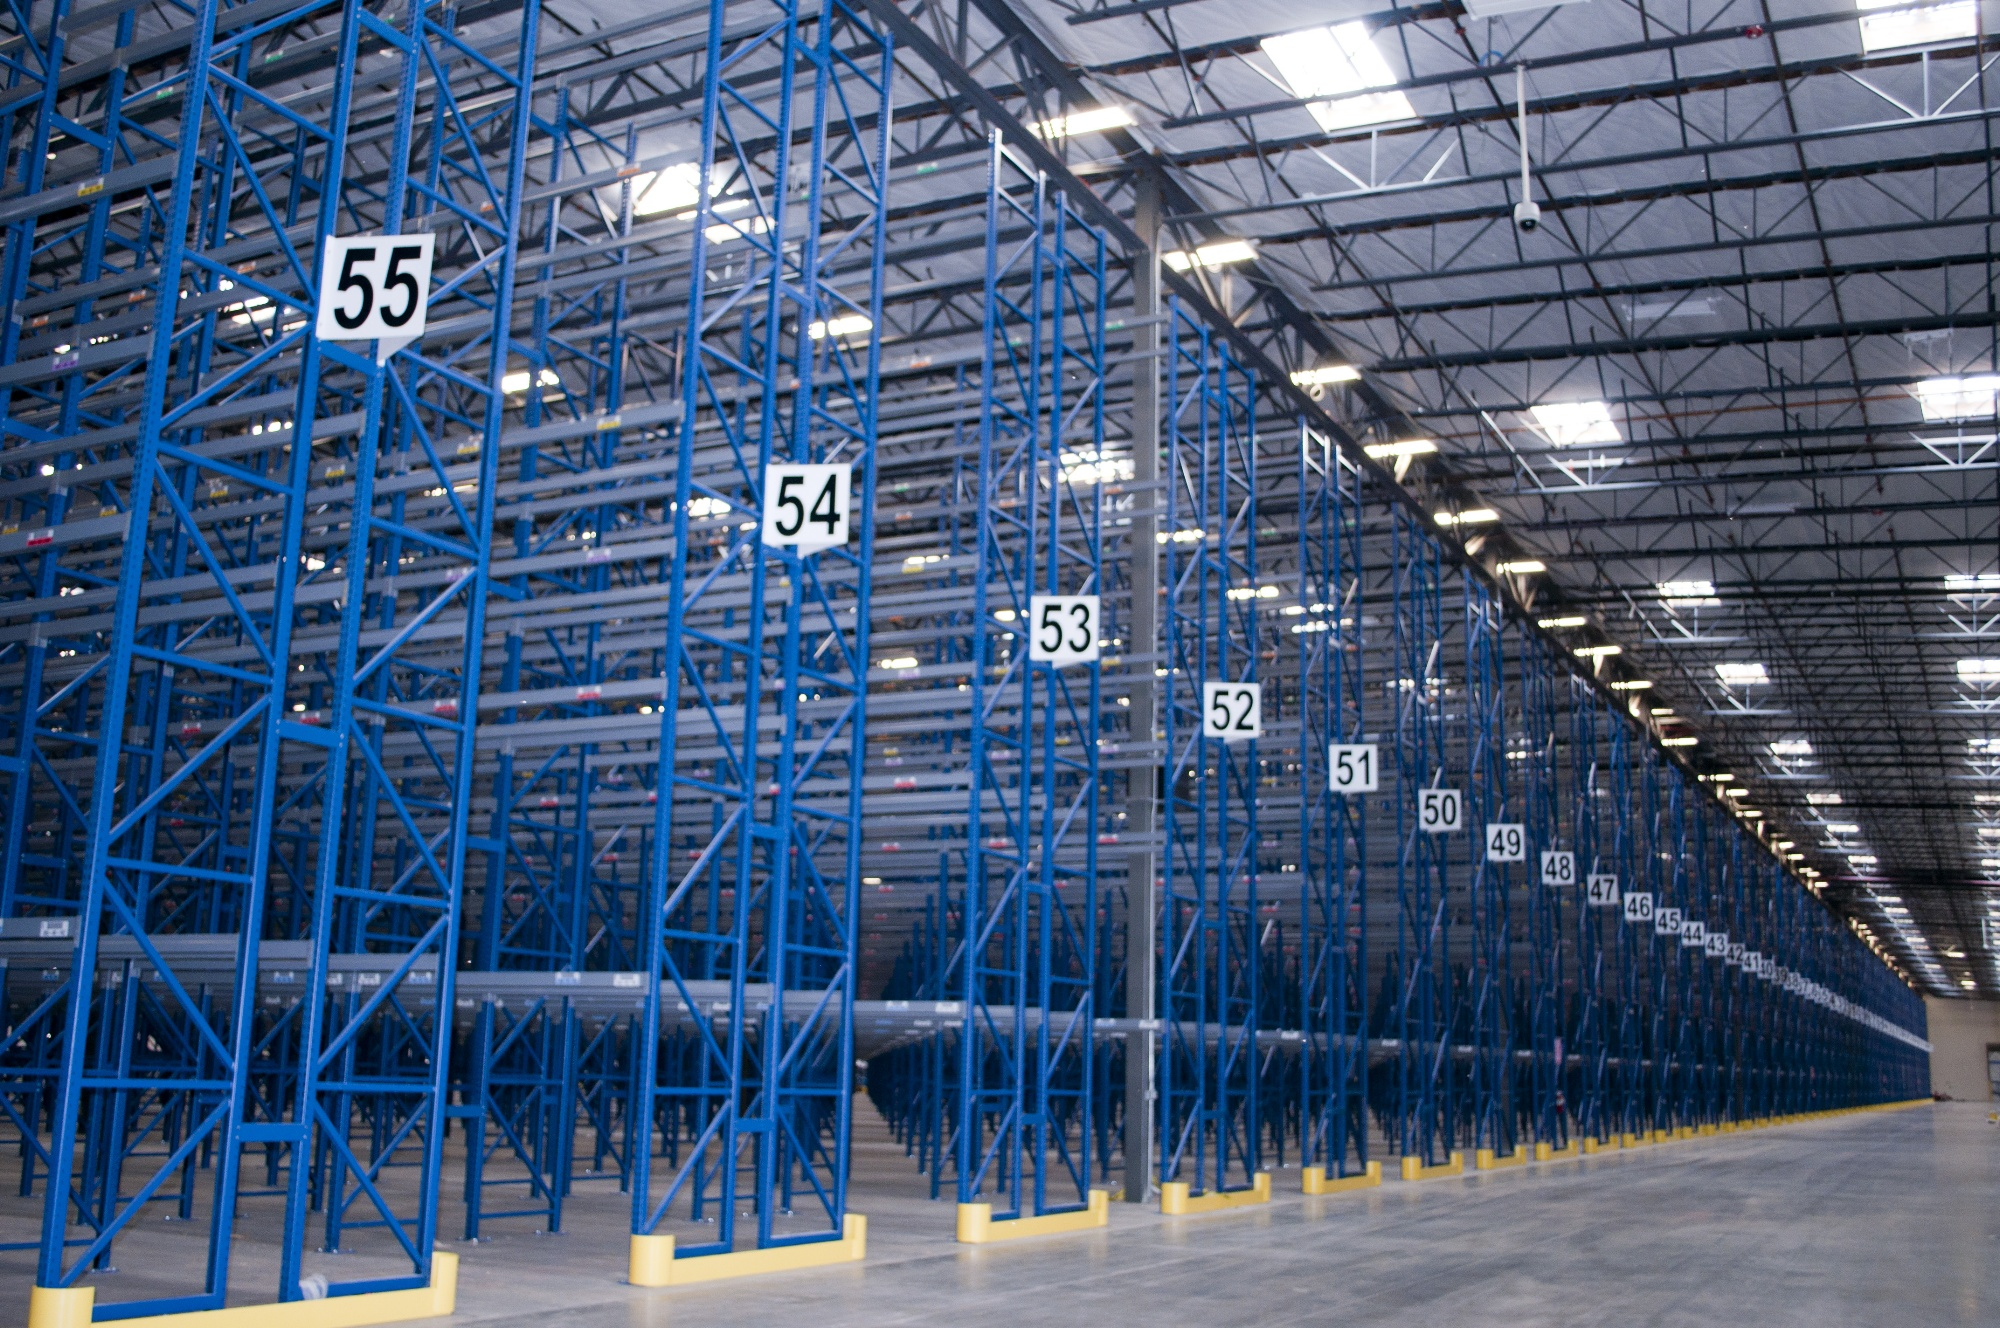 Pallet Rack Distribution Center